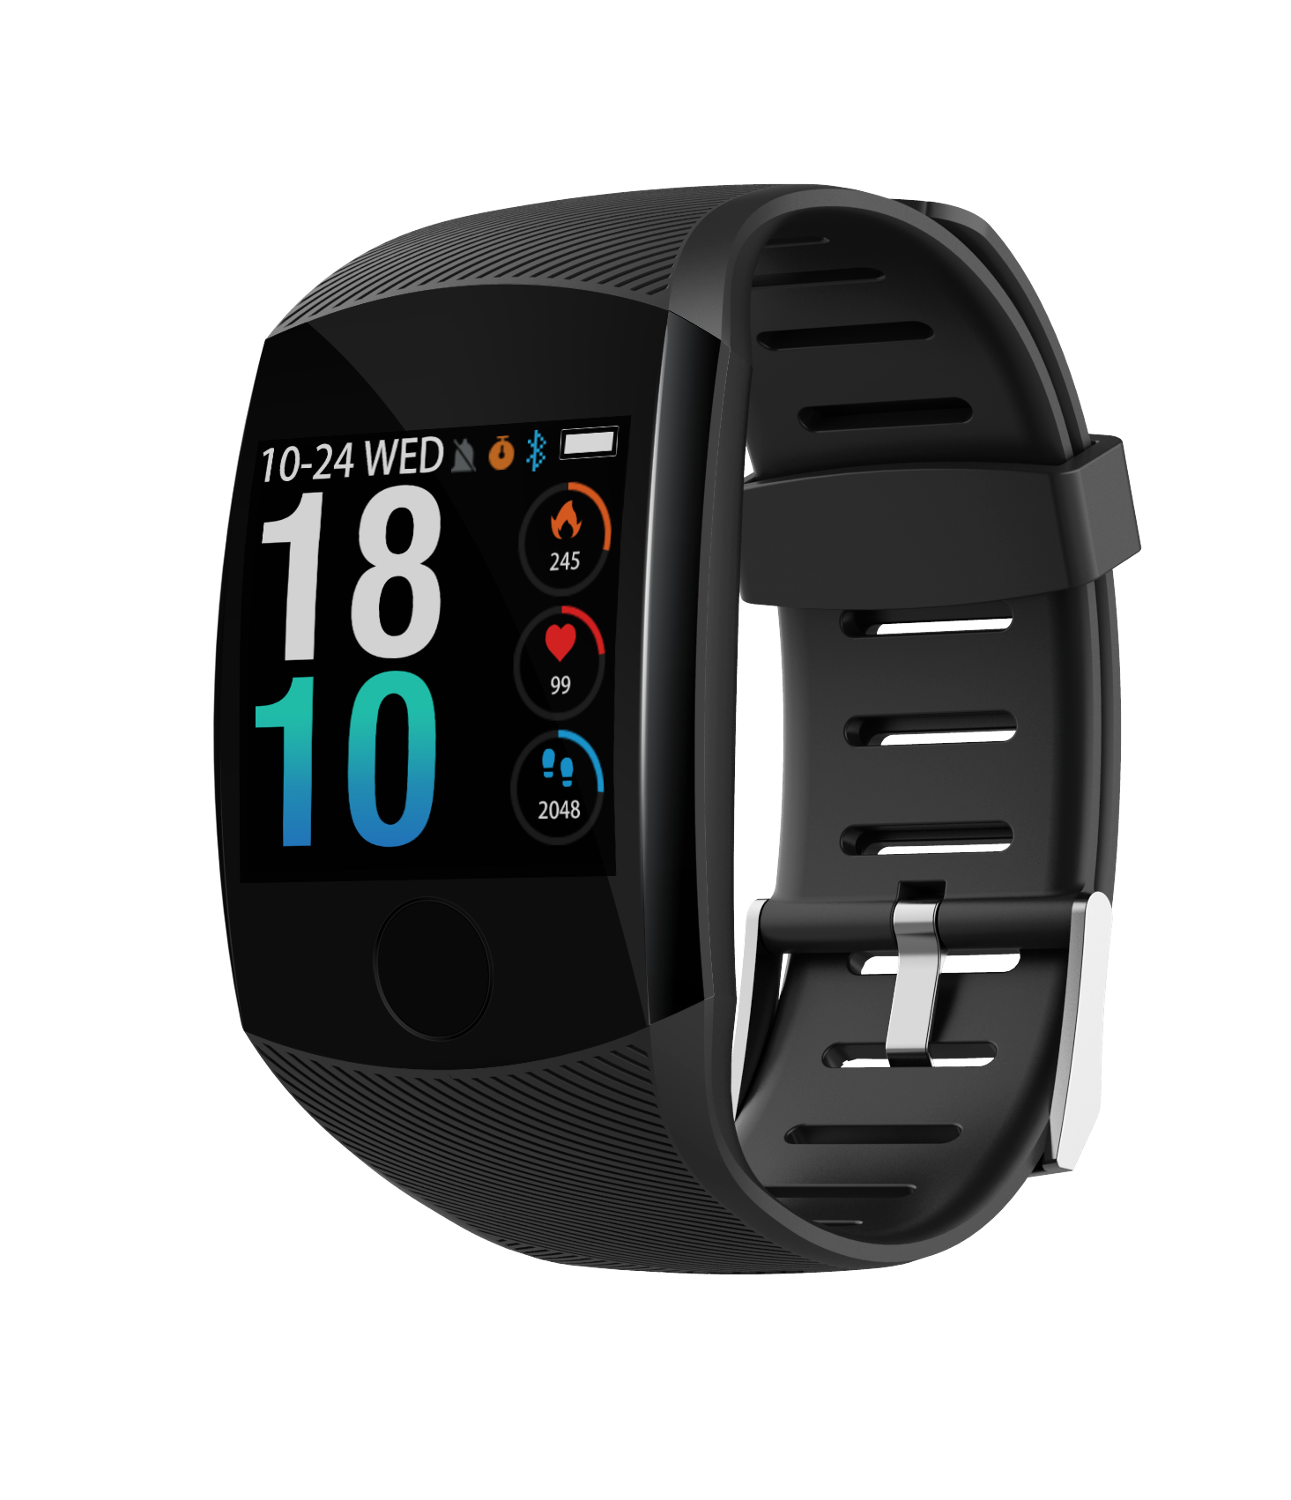 RGTOPONE Hot Q11 Smart Watch Waterproof Heart Rate Time Smart band Fitness Activity Tracker Fitness Bracelet Wristband